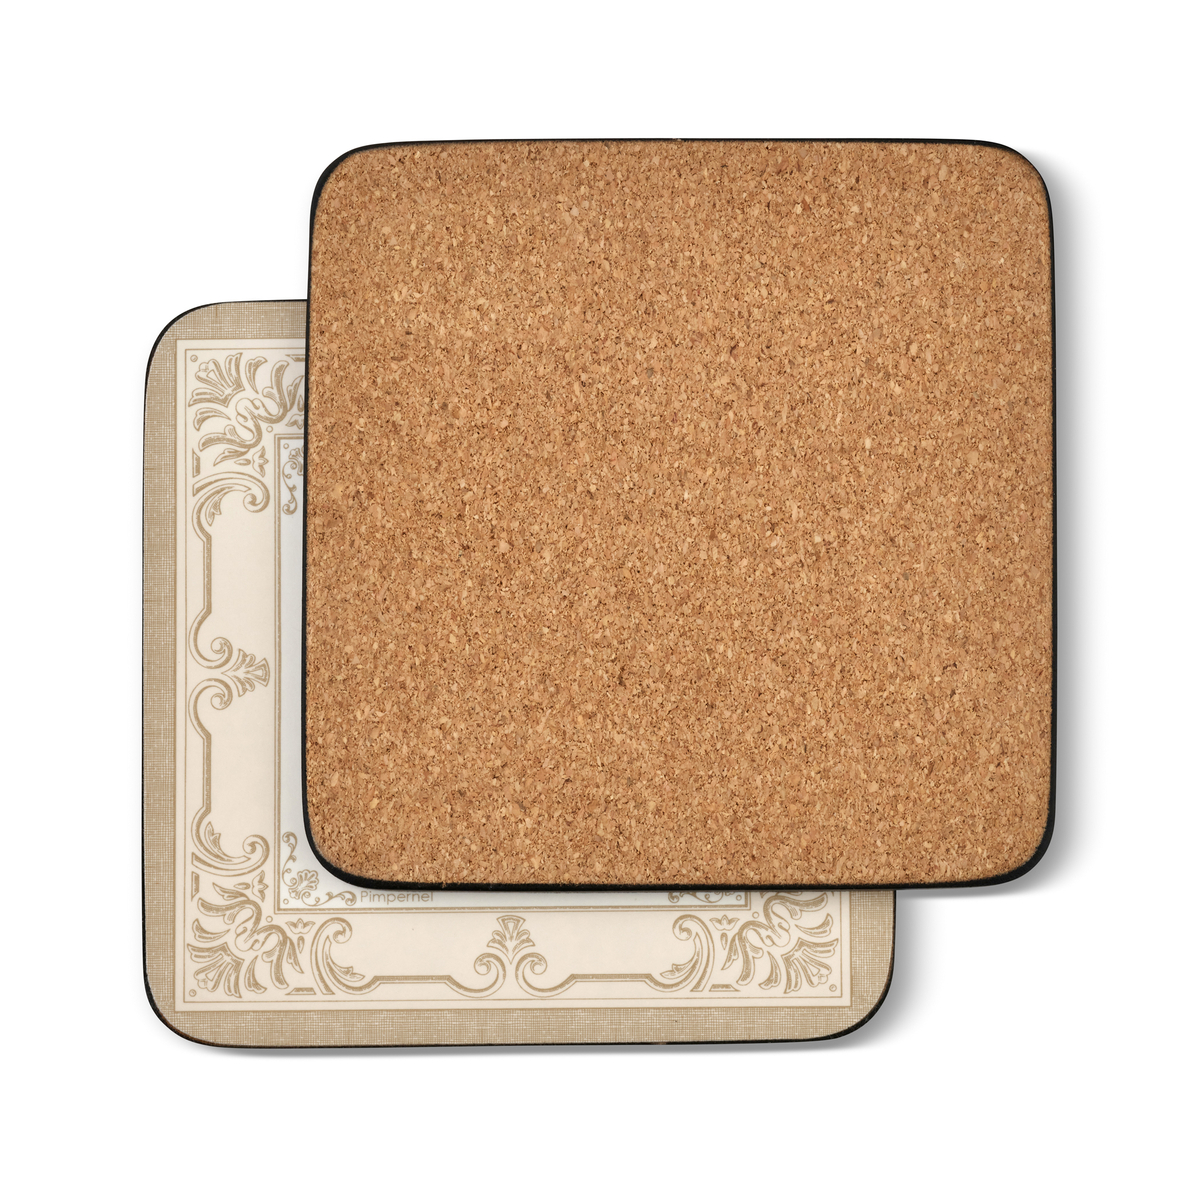 Pimpernel FDC-Fleur de Lys, Taupe/Gold Coasters Set of 6 image number null